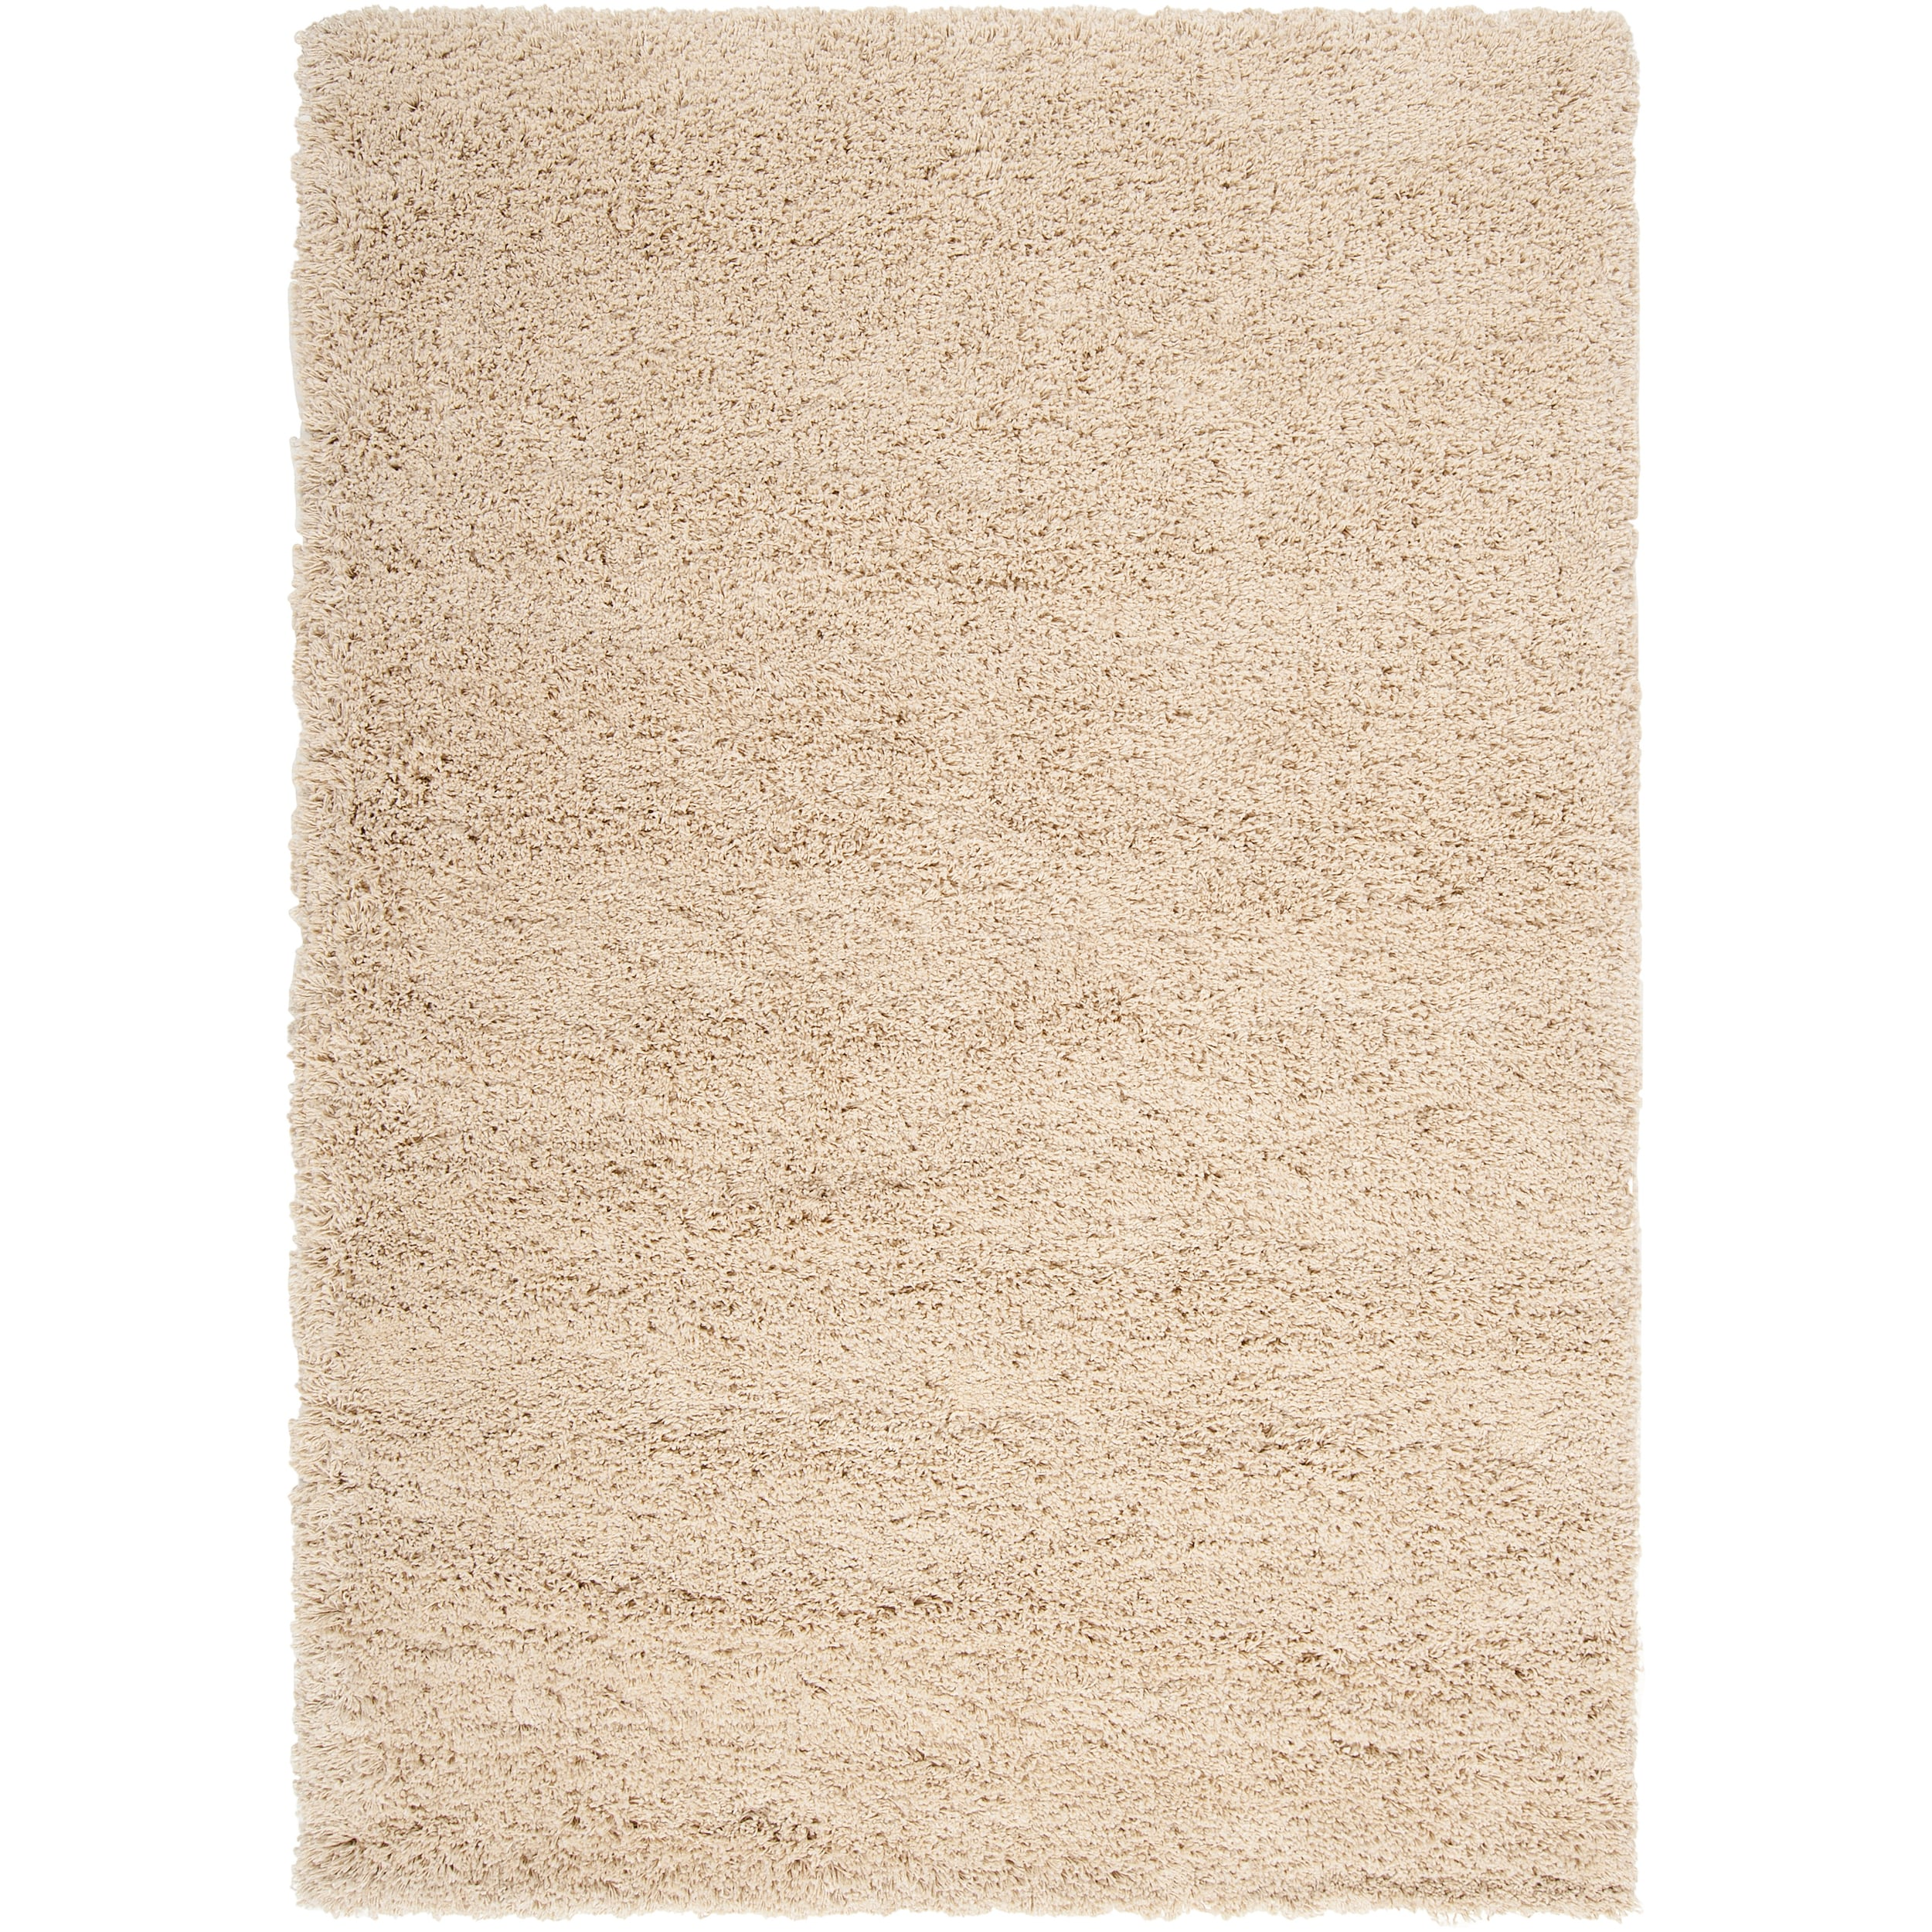 Woven White Luxurious Soft Shag Rug (6'7 x 9'6)